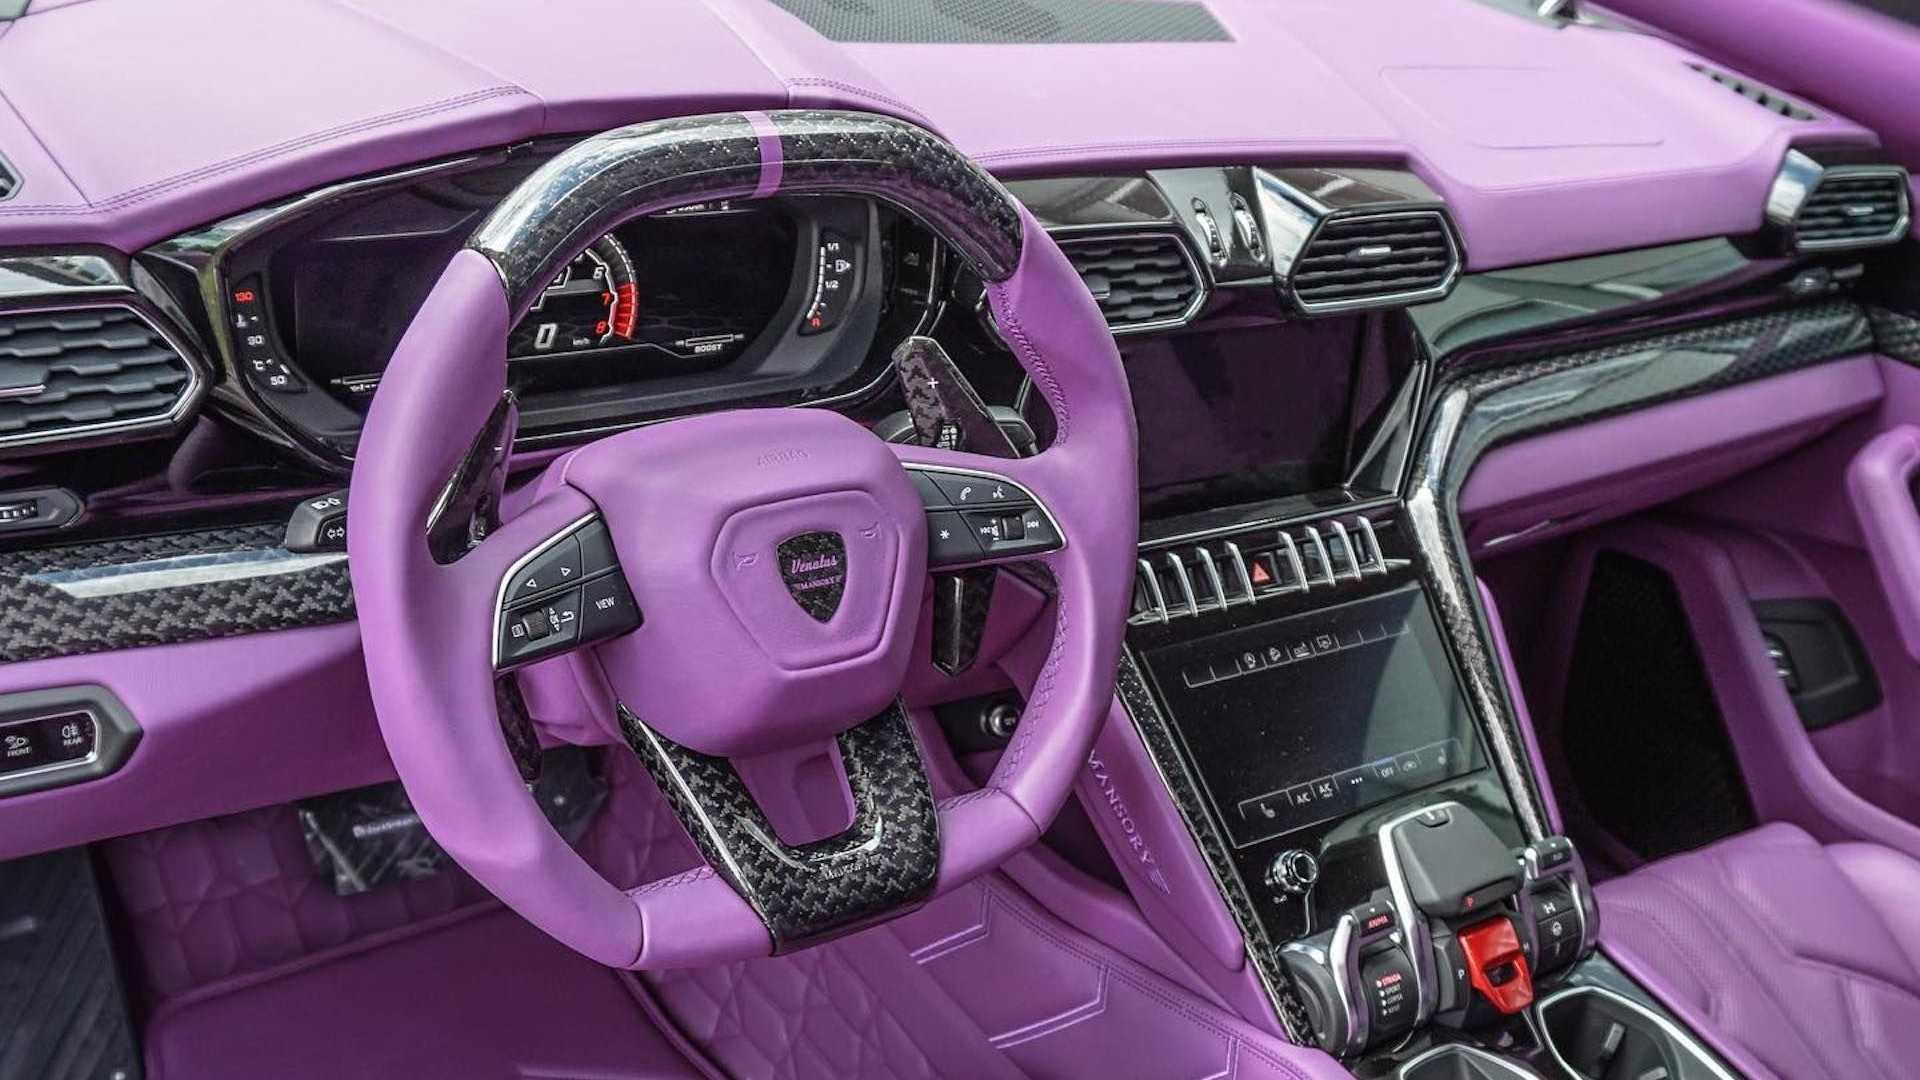 Not only will Lambo refuse to trim your Urus cabin in violet color, it might also call fashion police just for that one request. Tuners like Mansory are a different story altogether: you pay for what you want, you get it.